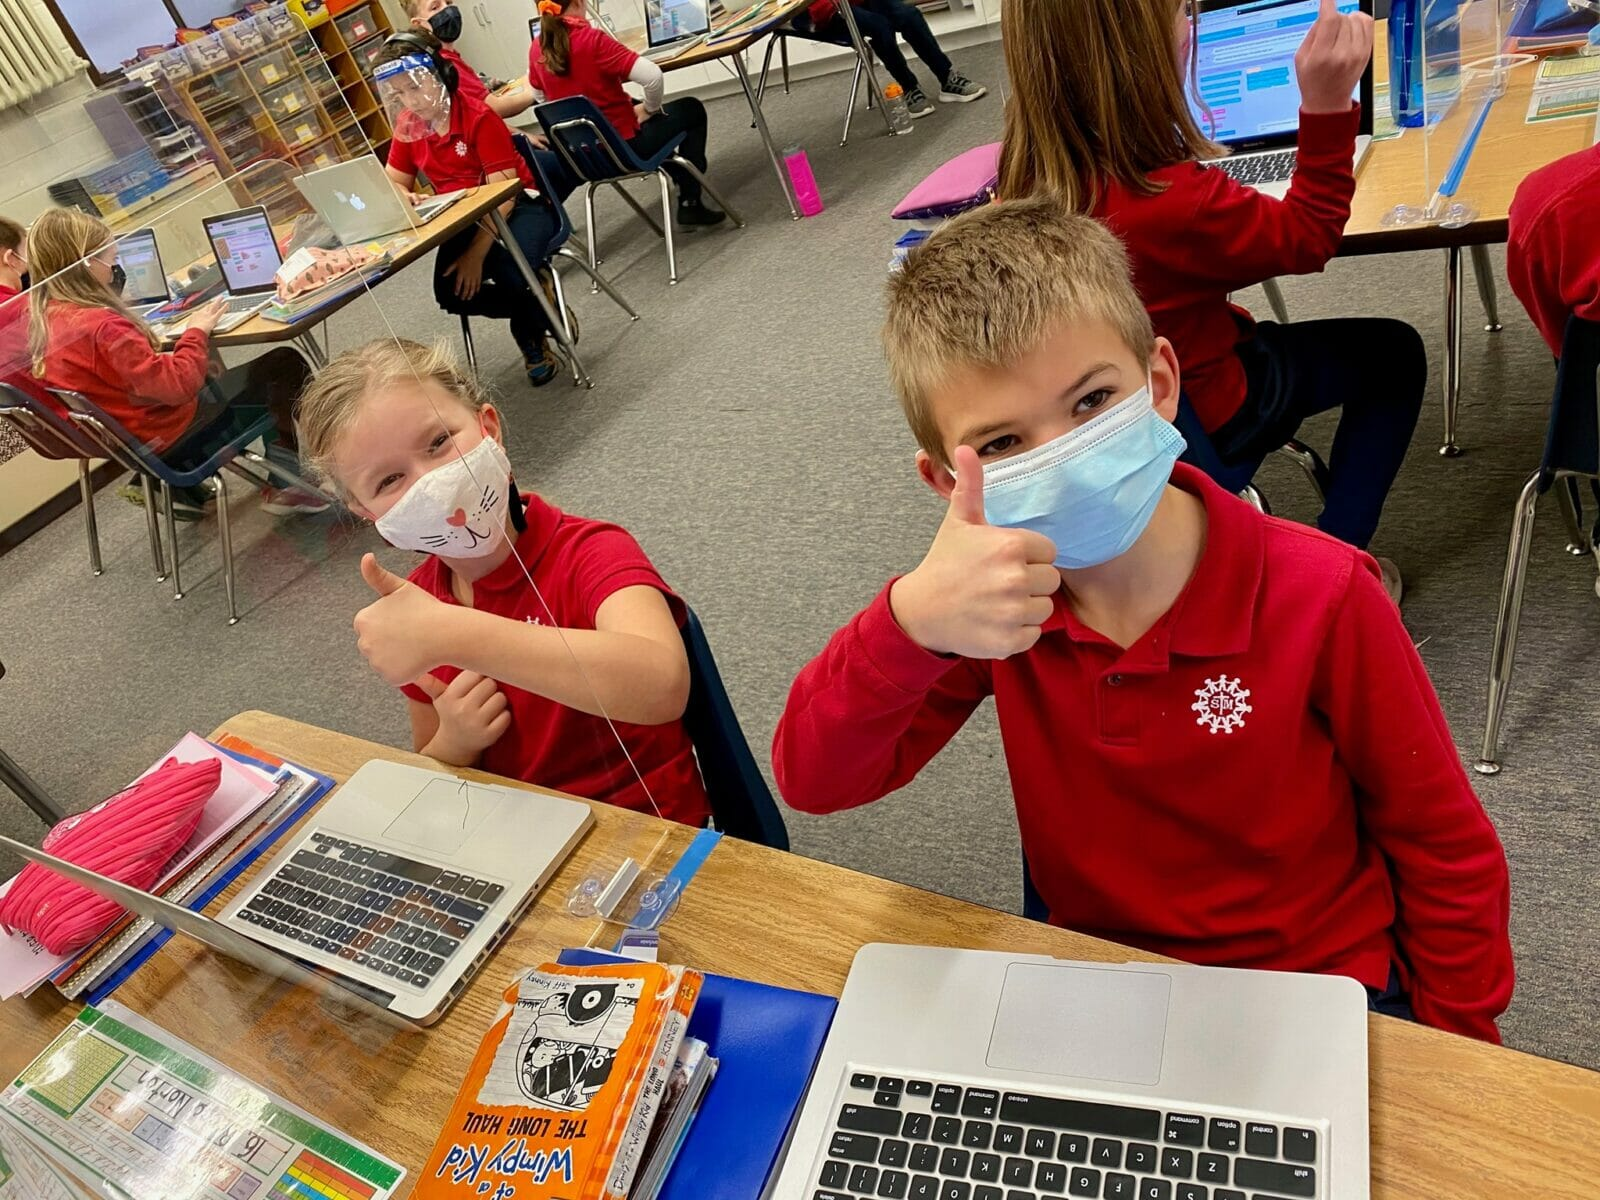 Catholic school students in masks giving thumbs up